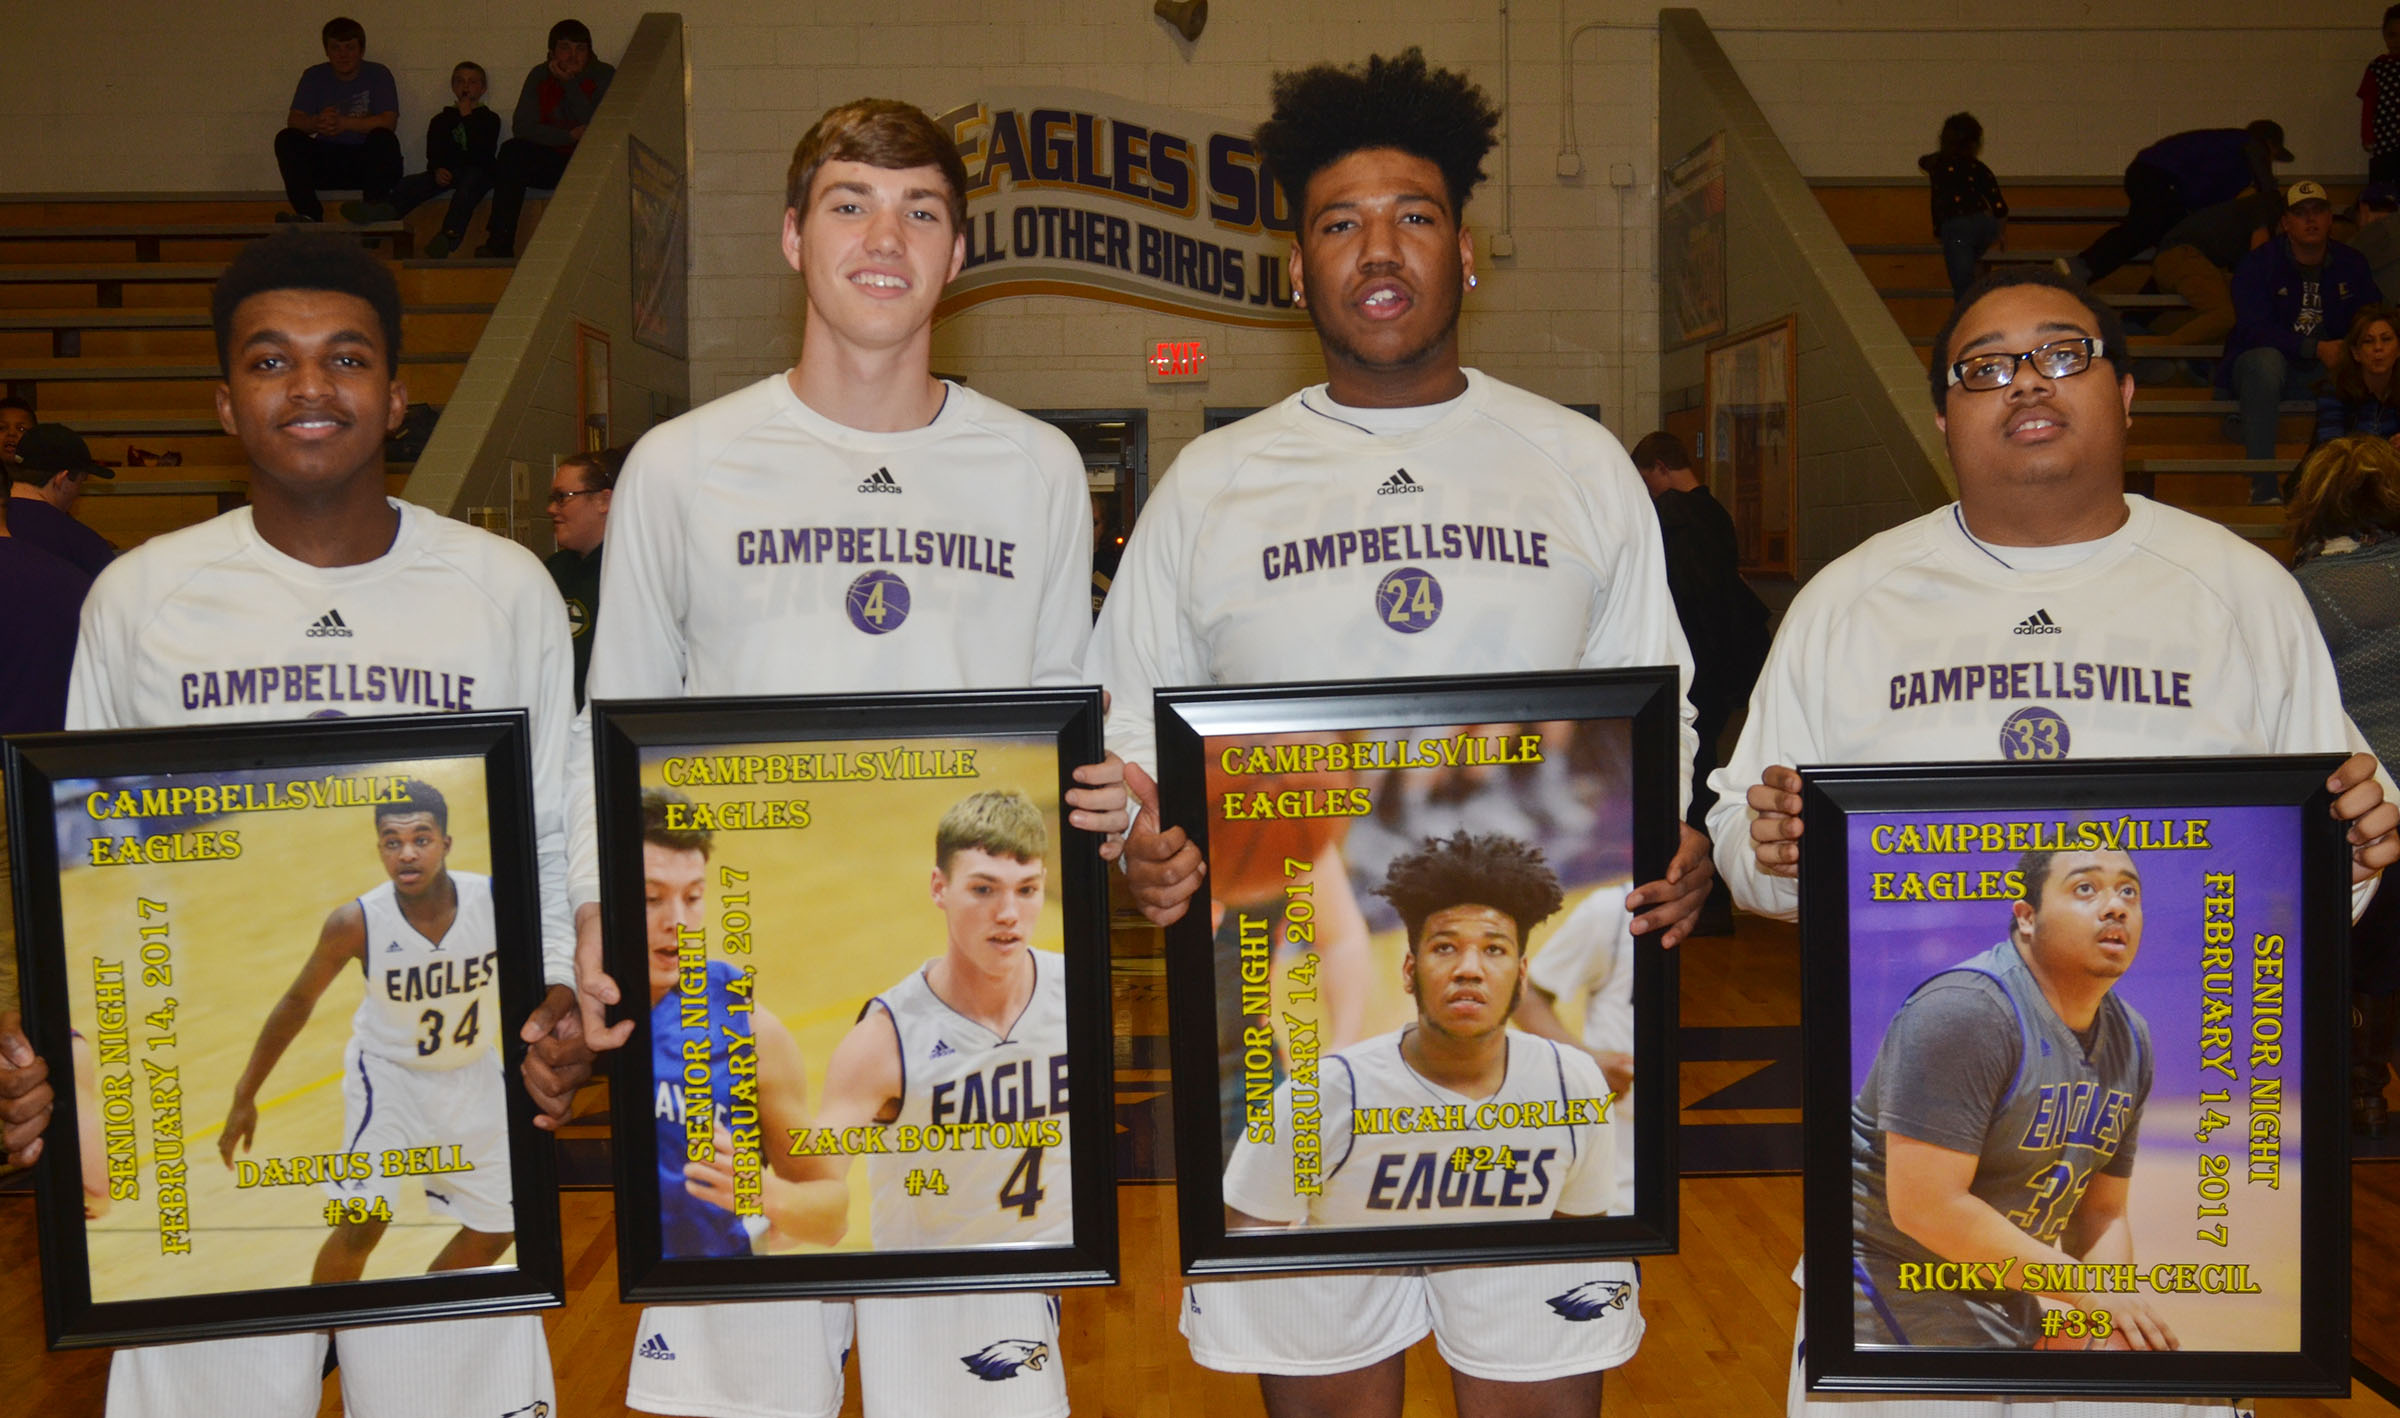 From left, CHS boys' basketball senior players Darius Bell, Zack Bottoms, Micah Corley and Ricky Smith-Cecil are honored for their dedication to their team.